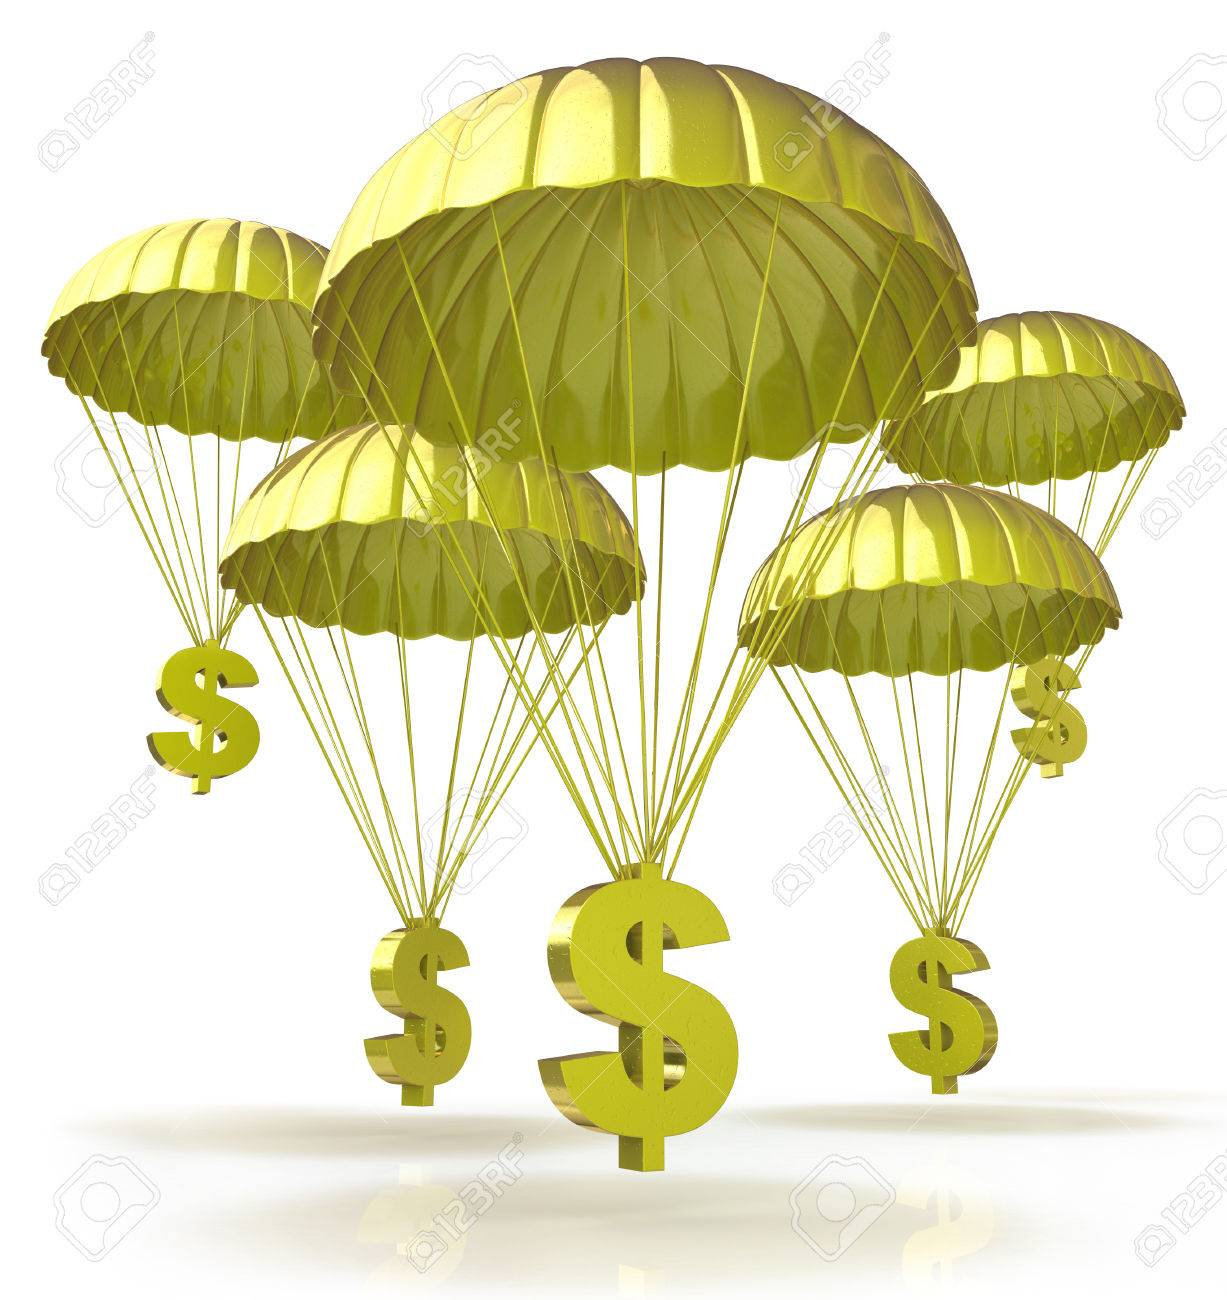 Golden parachutes. Dollar signs parachuting down from the sky for the design of information related to business and economy - 82455220